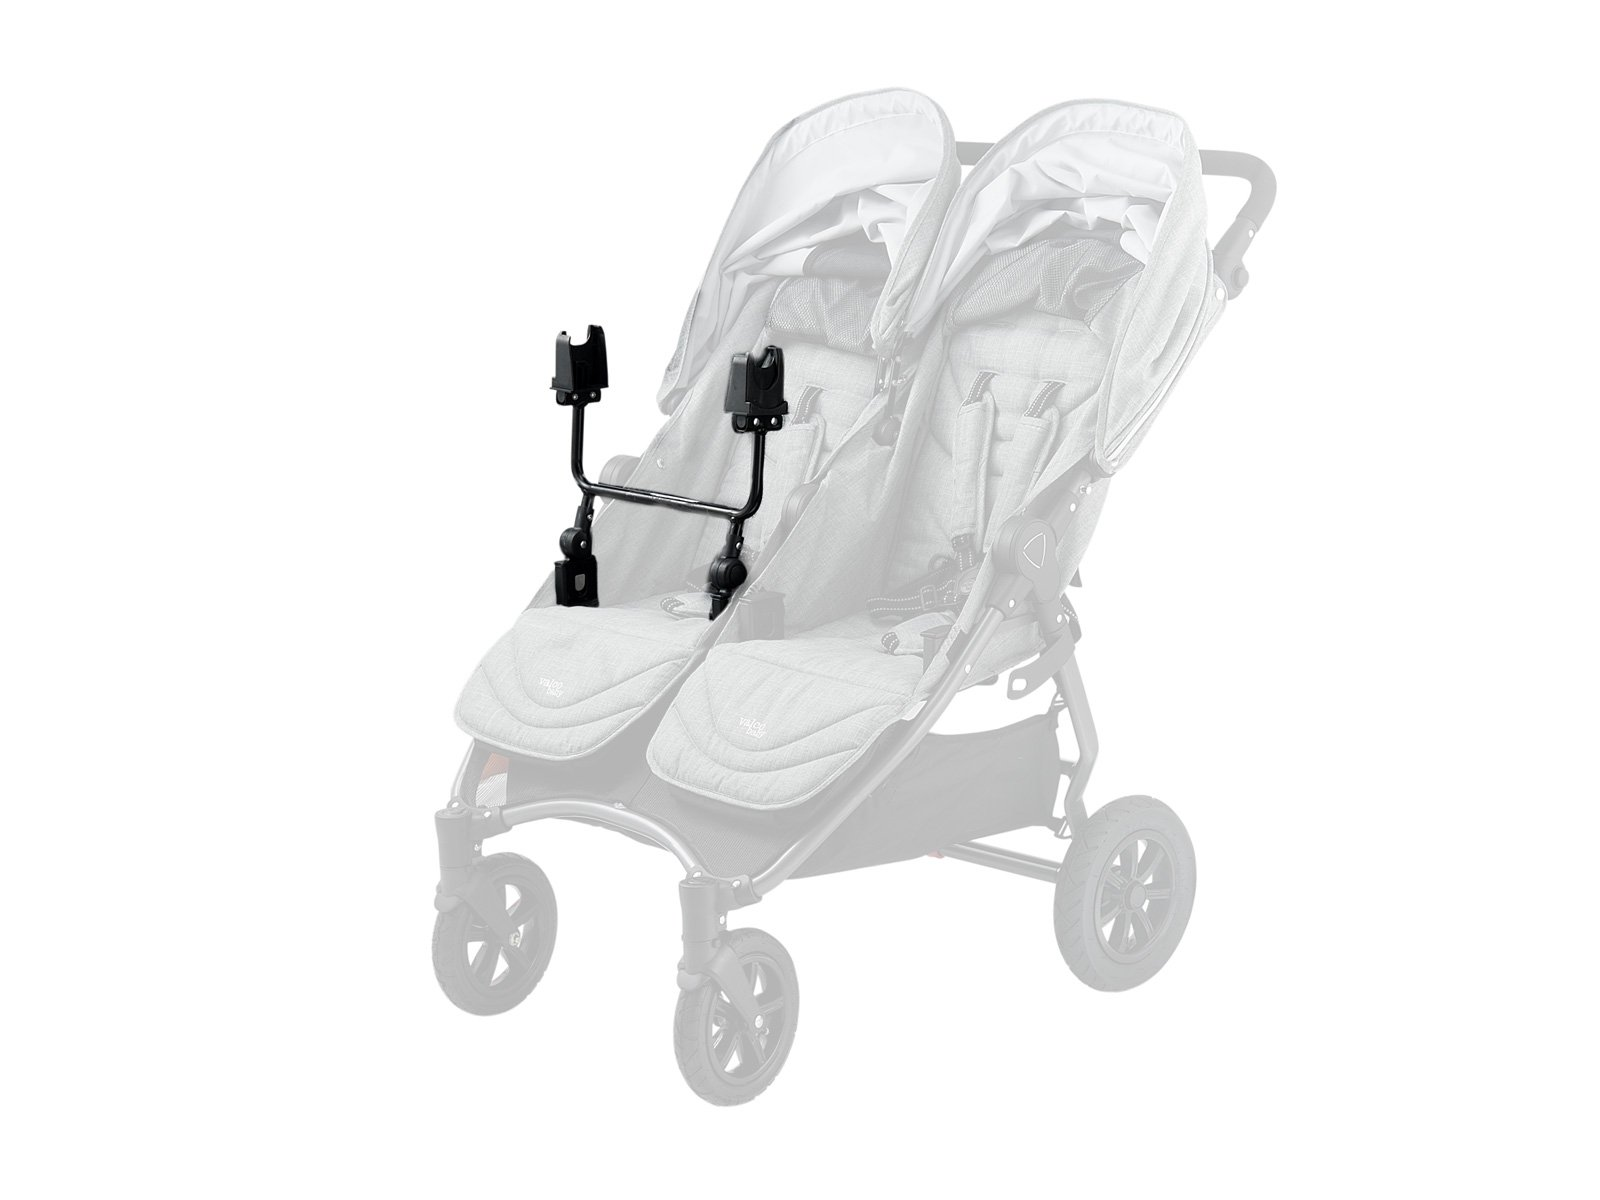 Amazon.com : Valco Baby Neo Twin Double Lightweight All